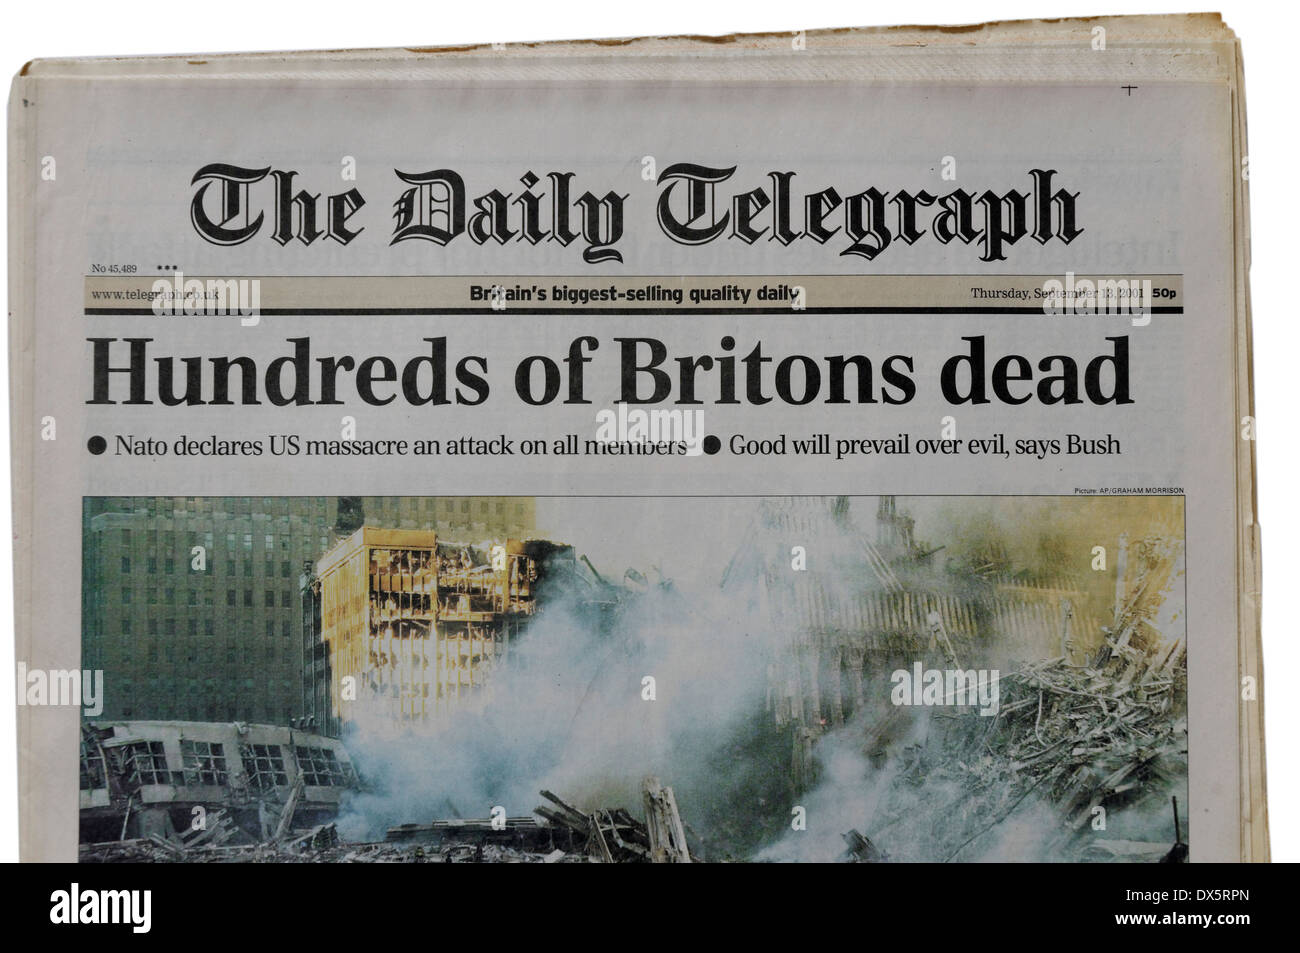 The Daily Telegraph from September 13th 2001 announcing the loss of British lives in the New York attacks - Stock Image